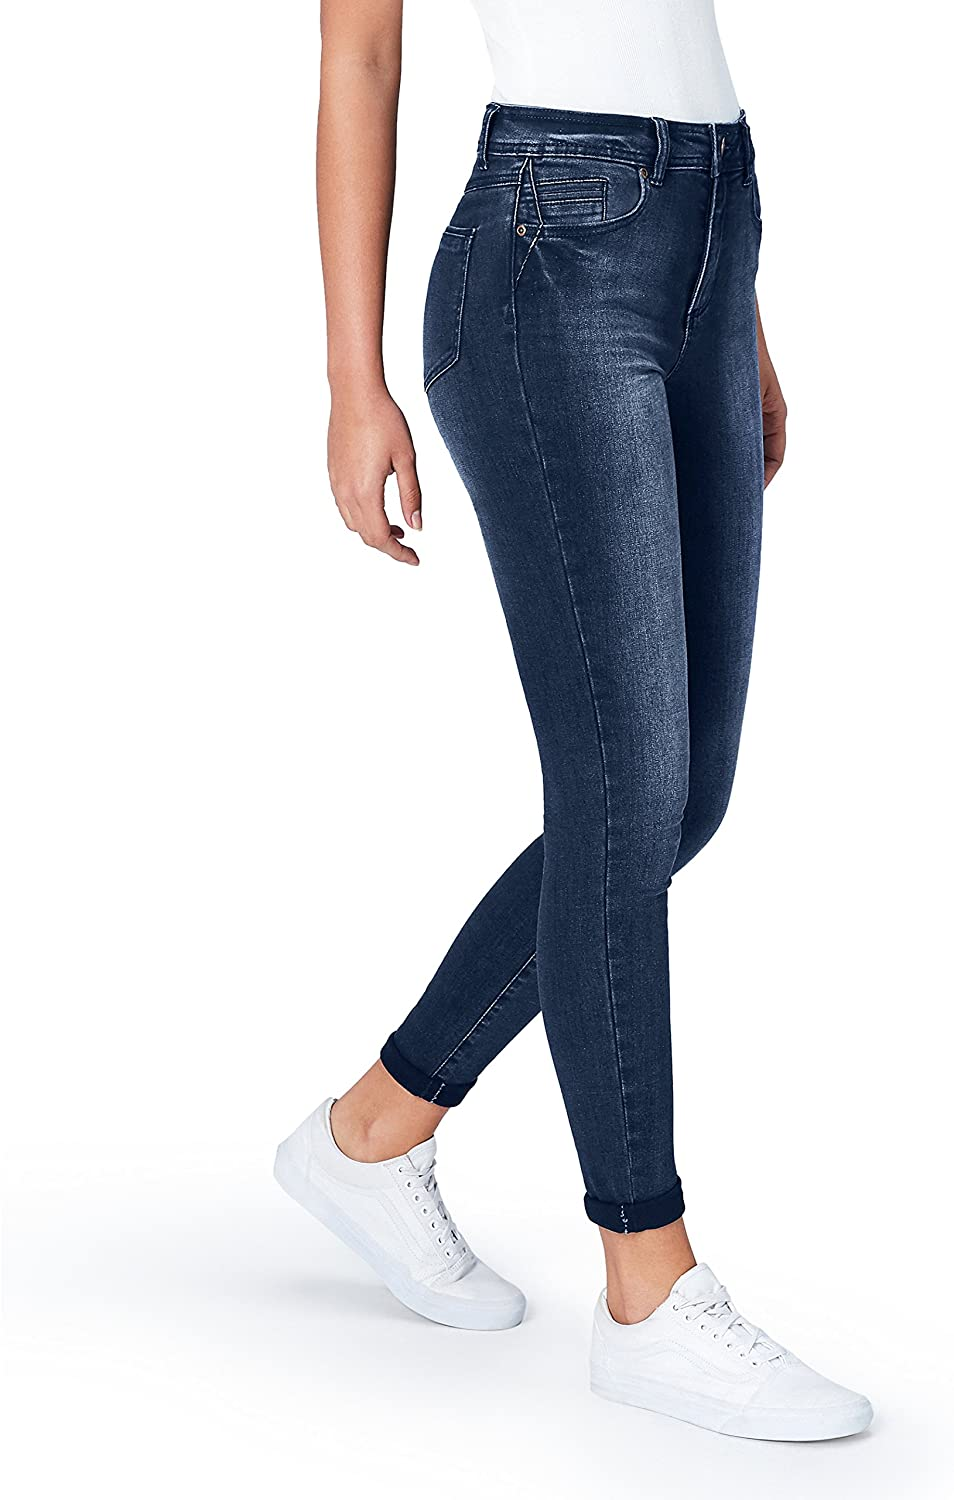 DHgate Brand - find. Women's Skinny Mid Rise Stretch Jeans